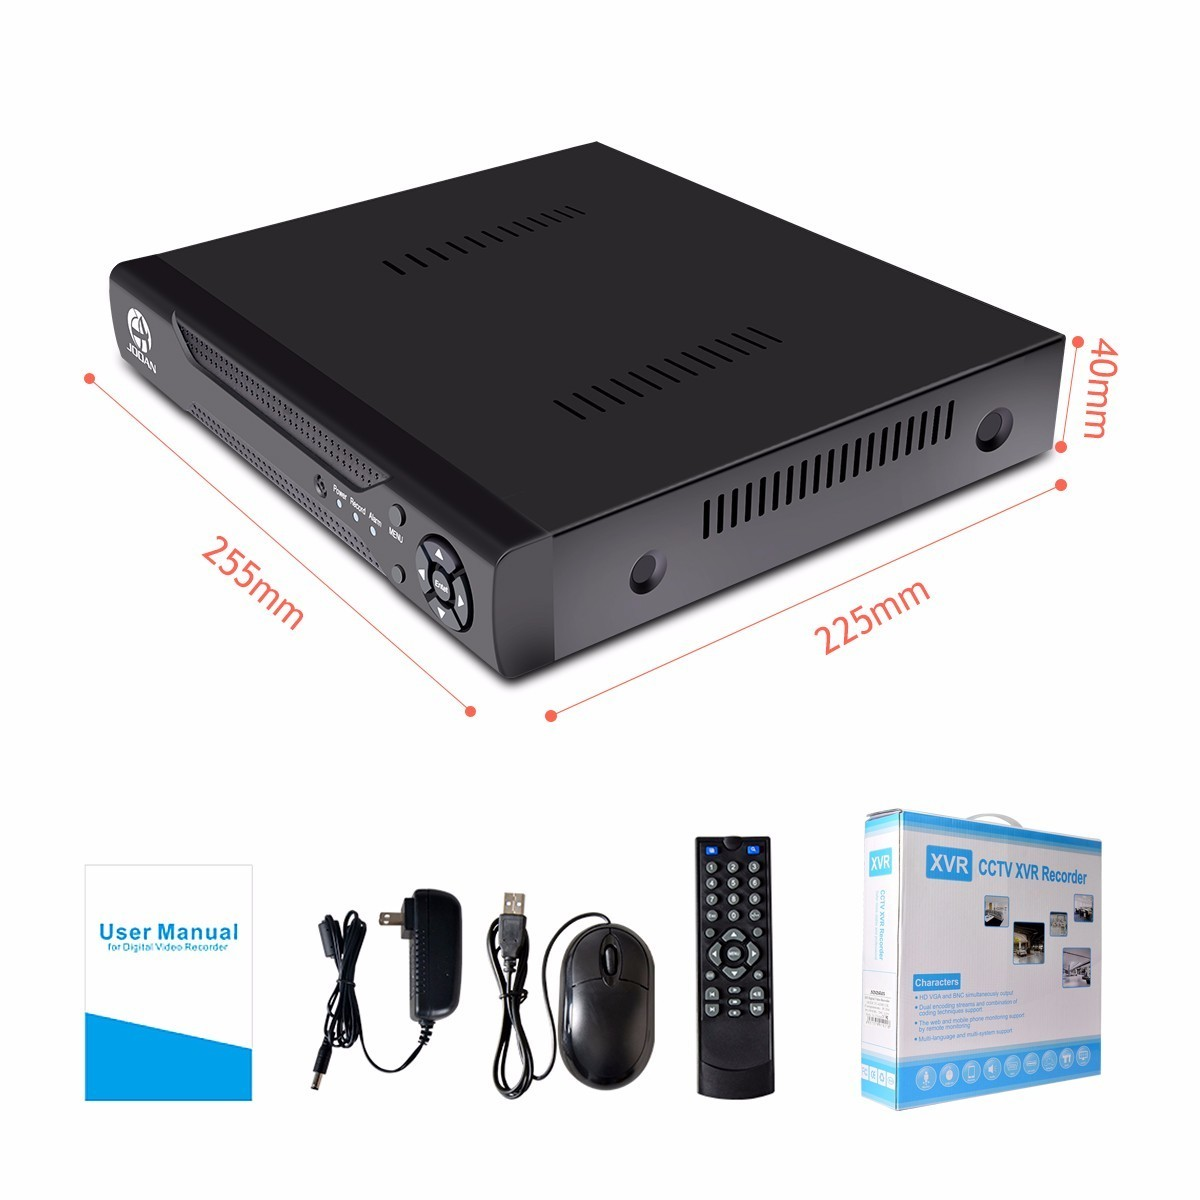 ge dvr user guide user guide manual that easy to read u2022 rh sibere co directv dvr user guide DirecTV HD DVR USB Port